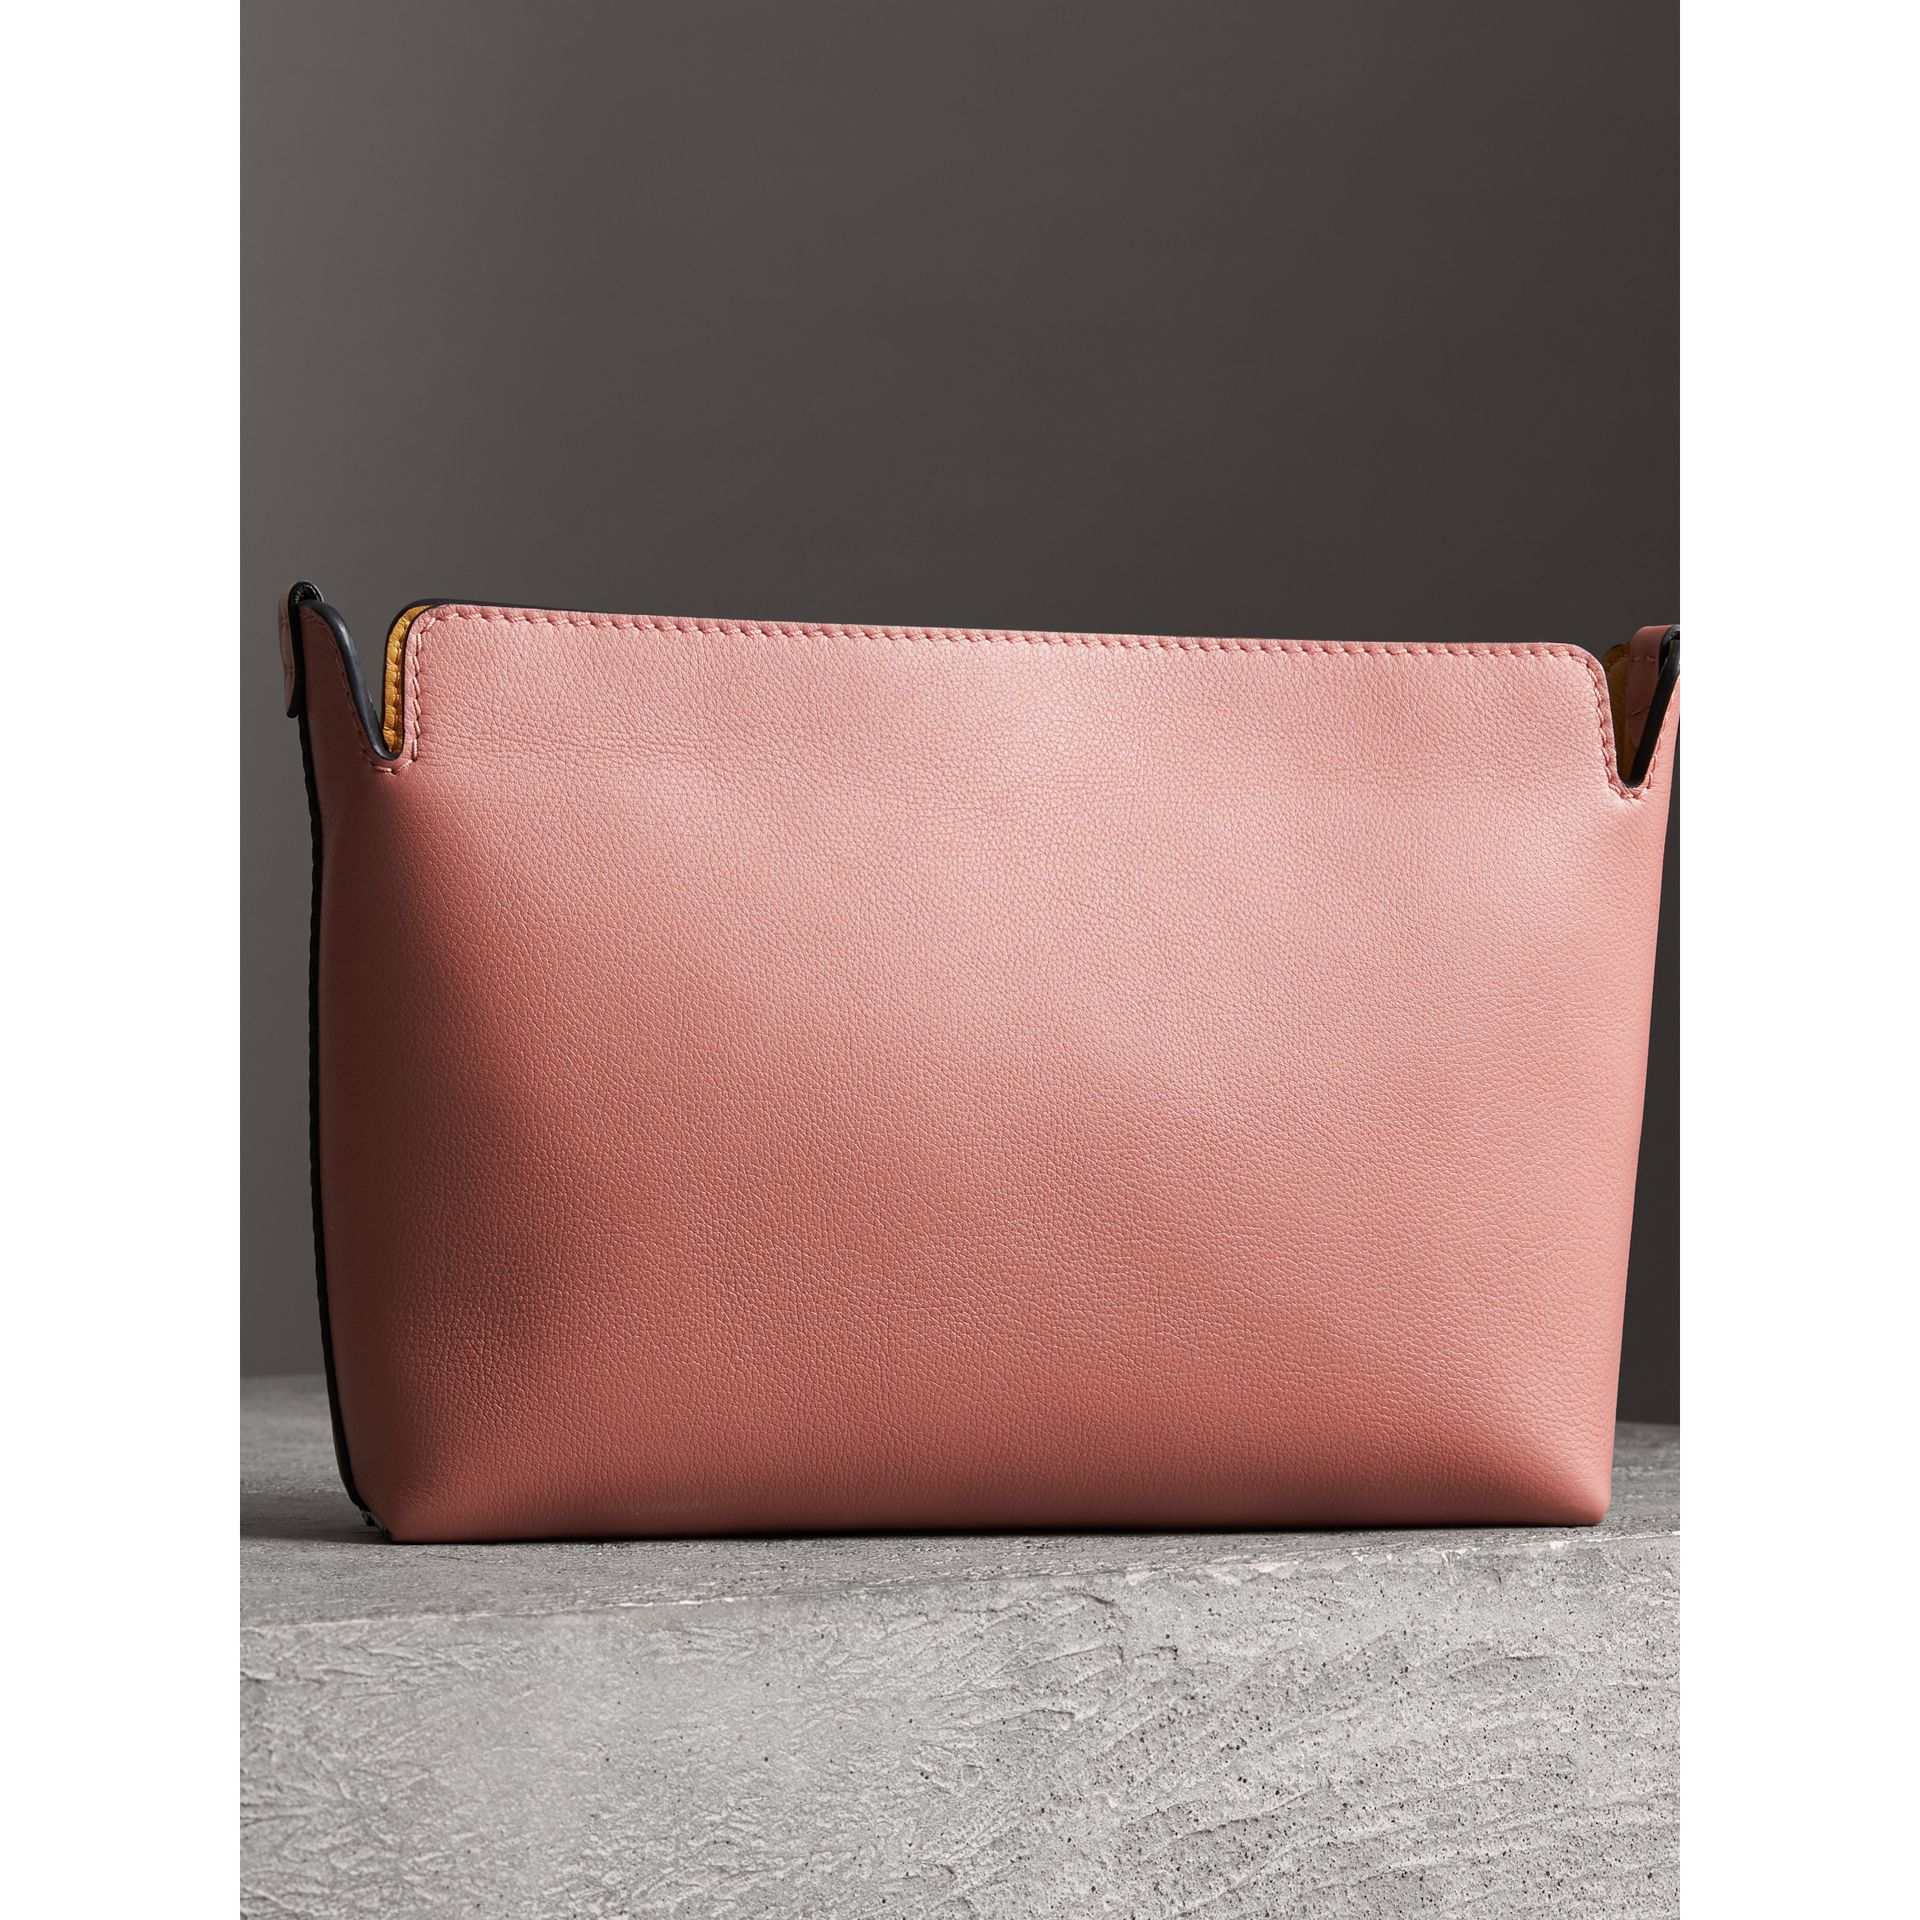 Medium Tri-tone Leather Clutch in Deep Claret/dusty Rose - Women | Burberry Hong Kong - gallery image 4